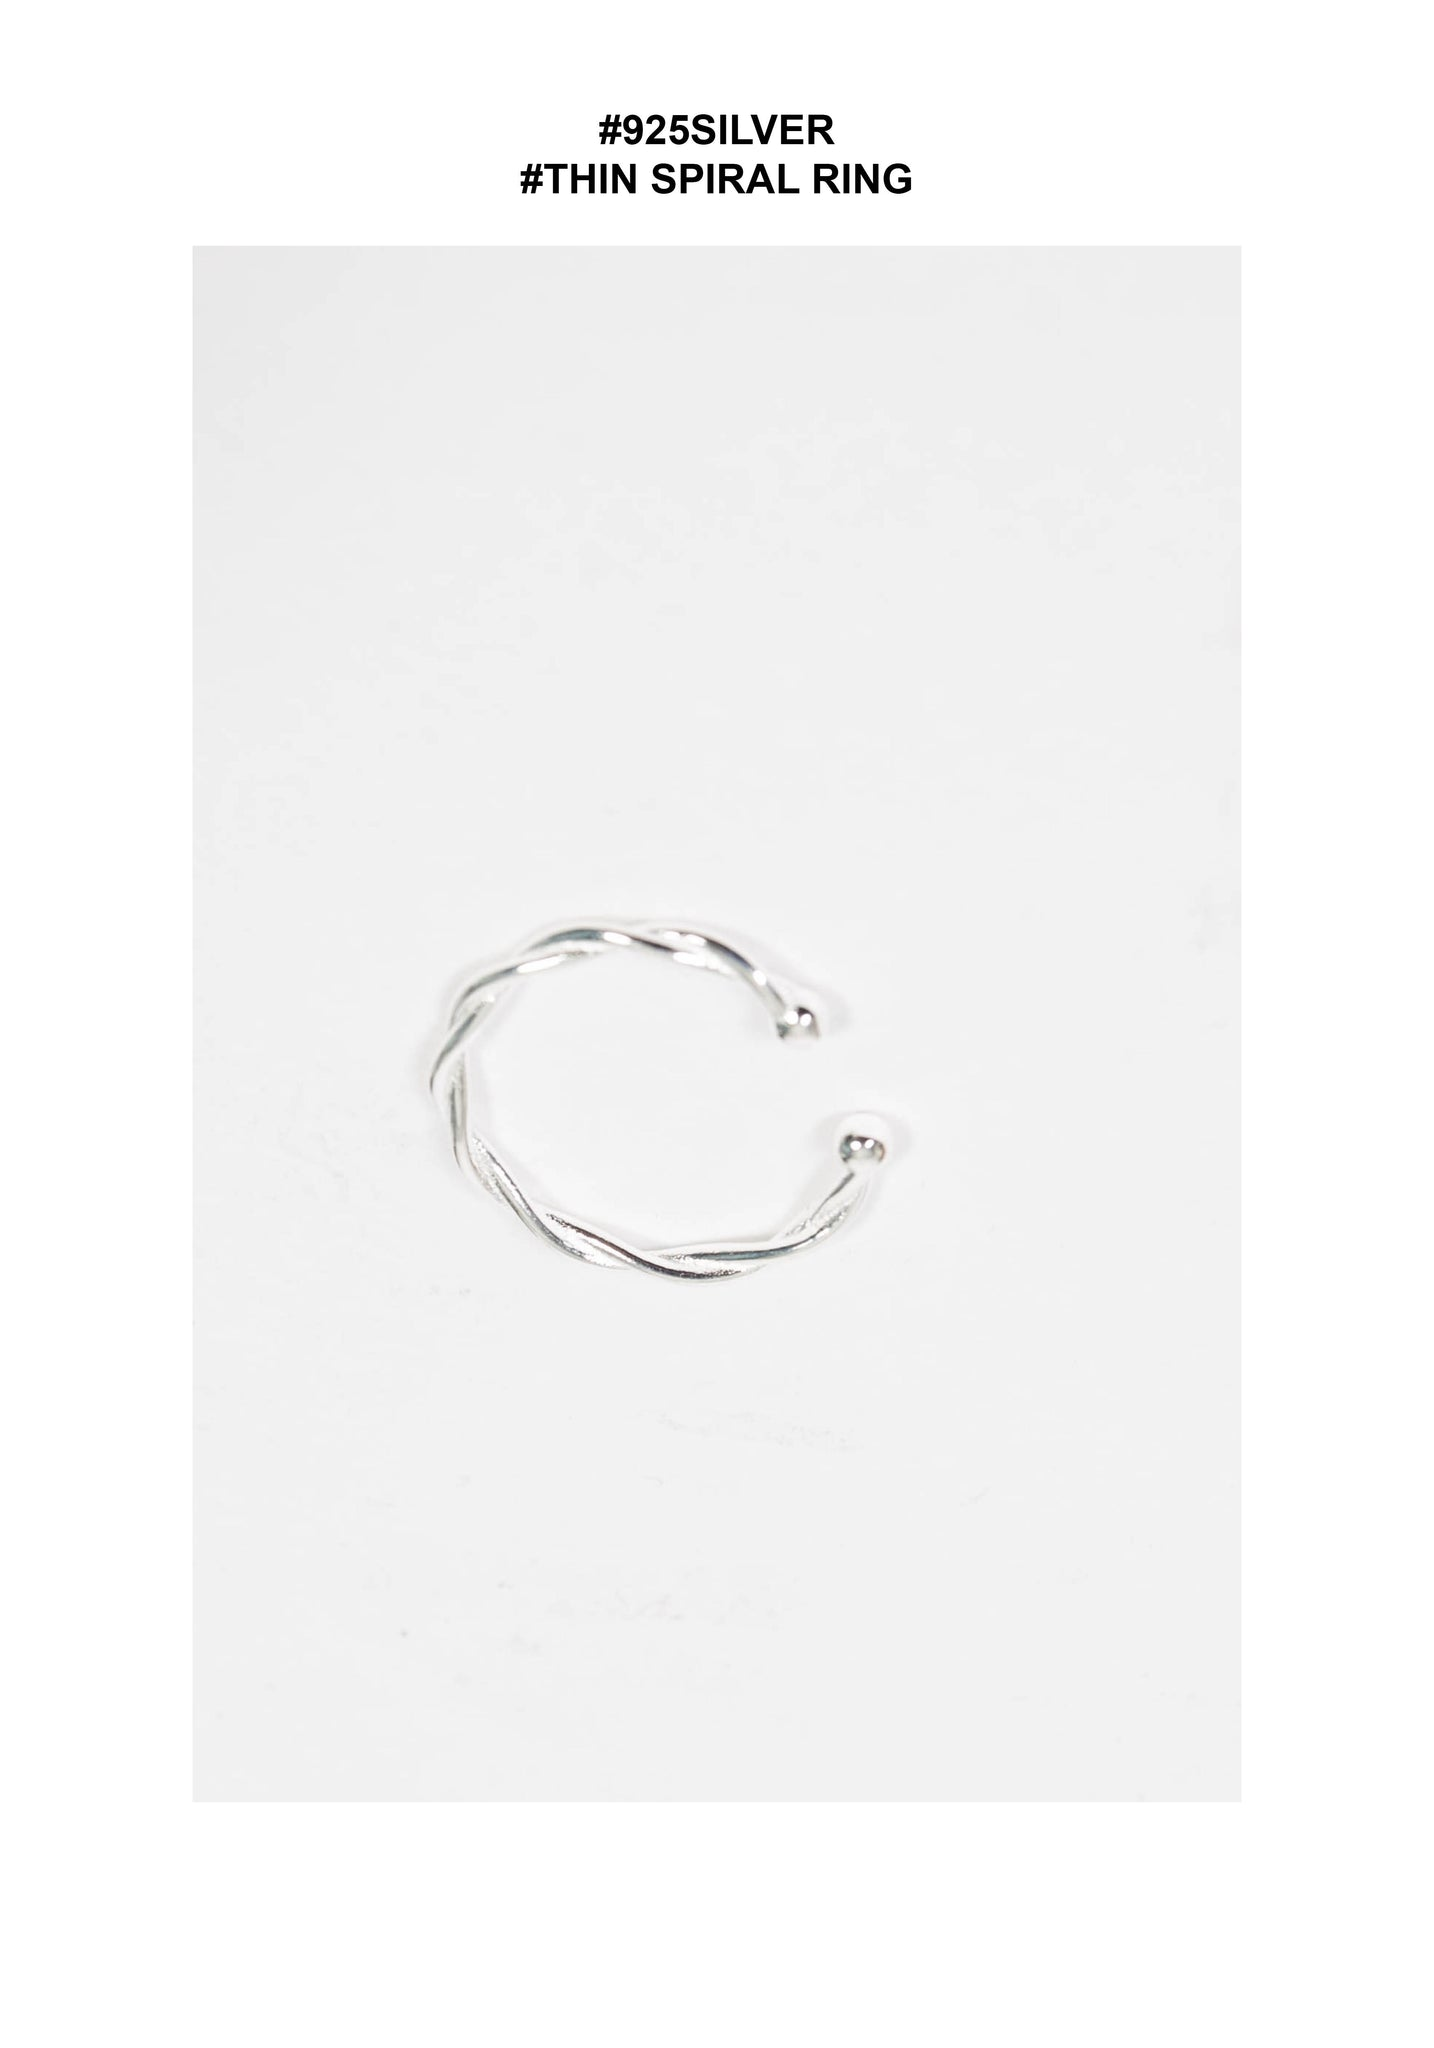 925 Silver Spiral Thin Ring